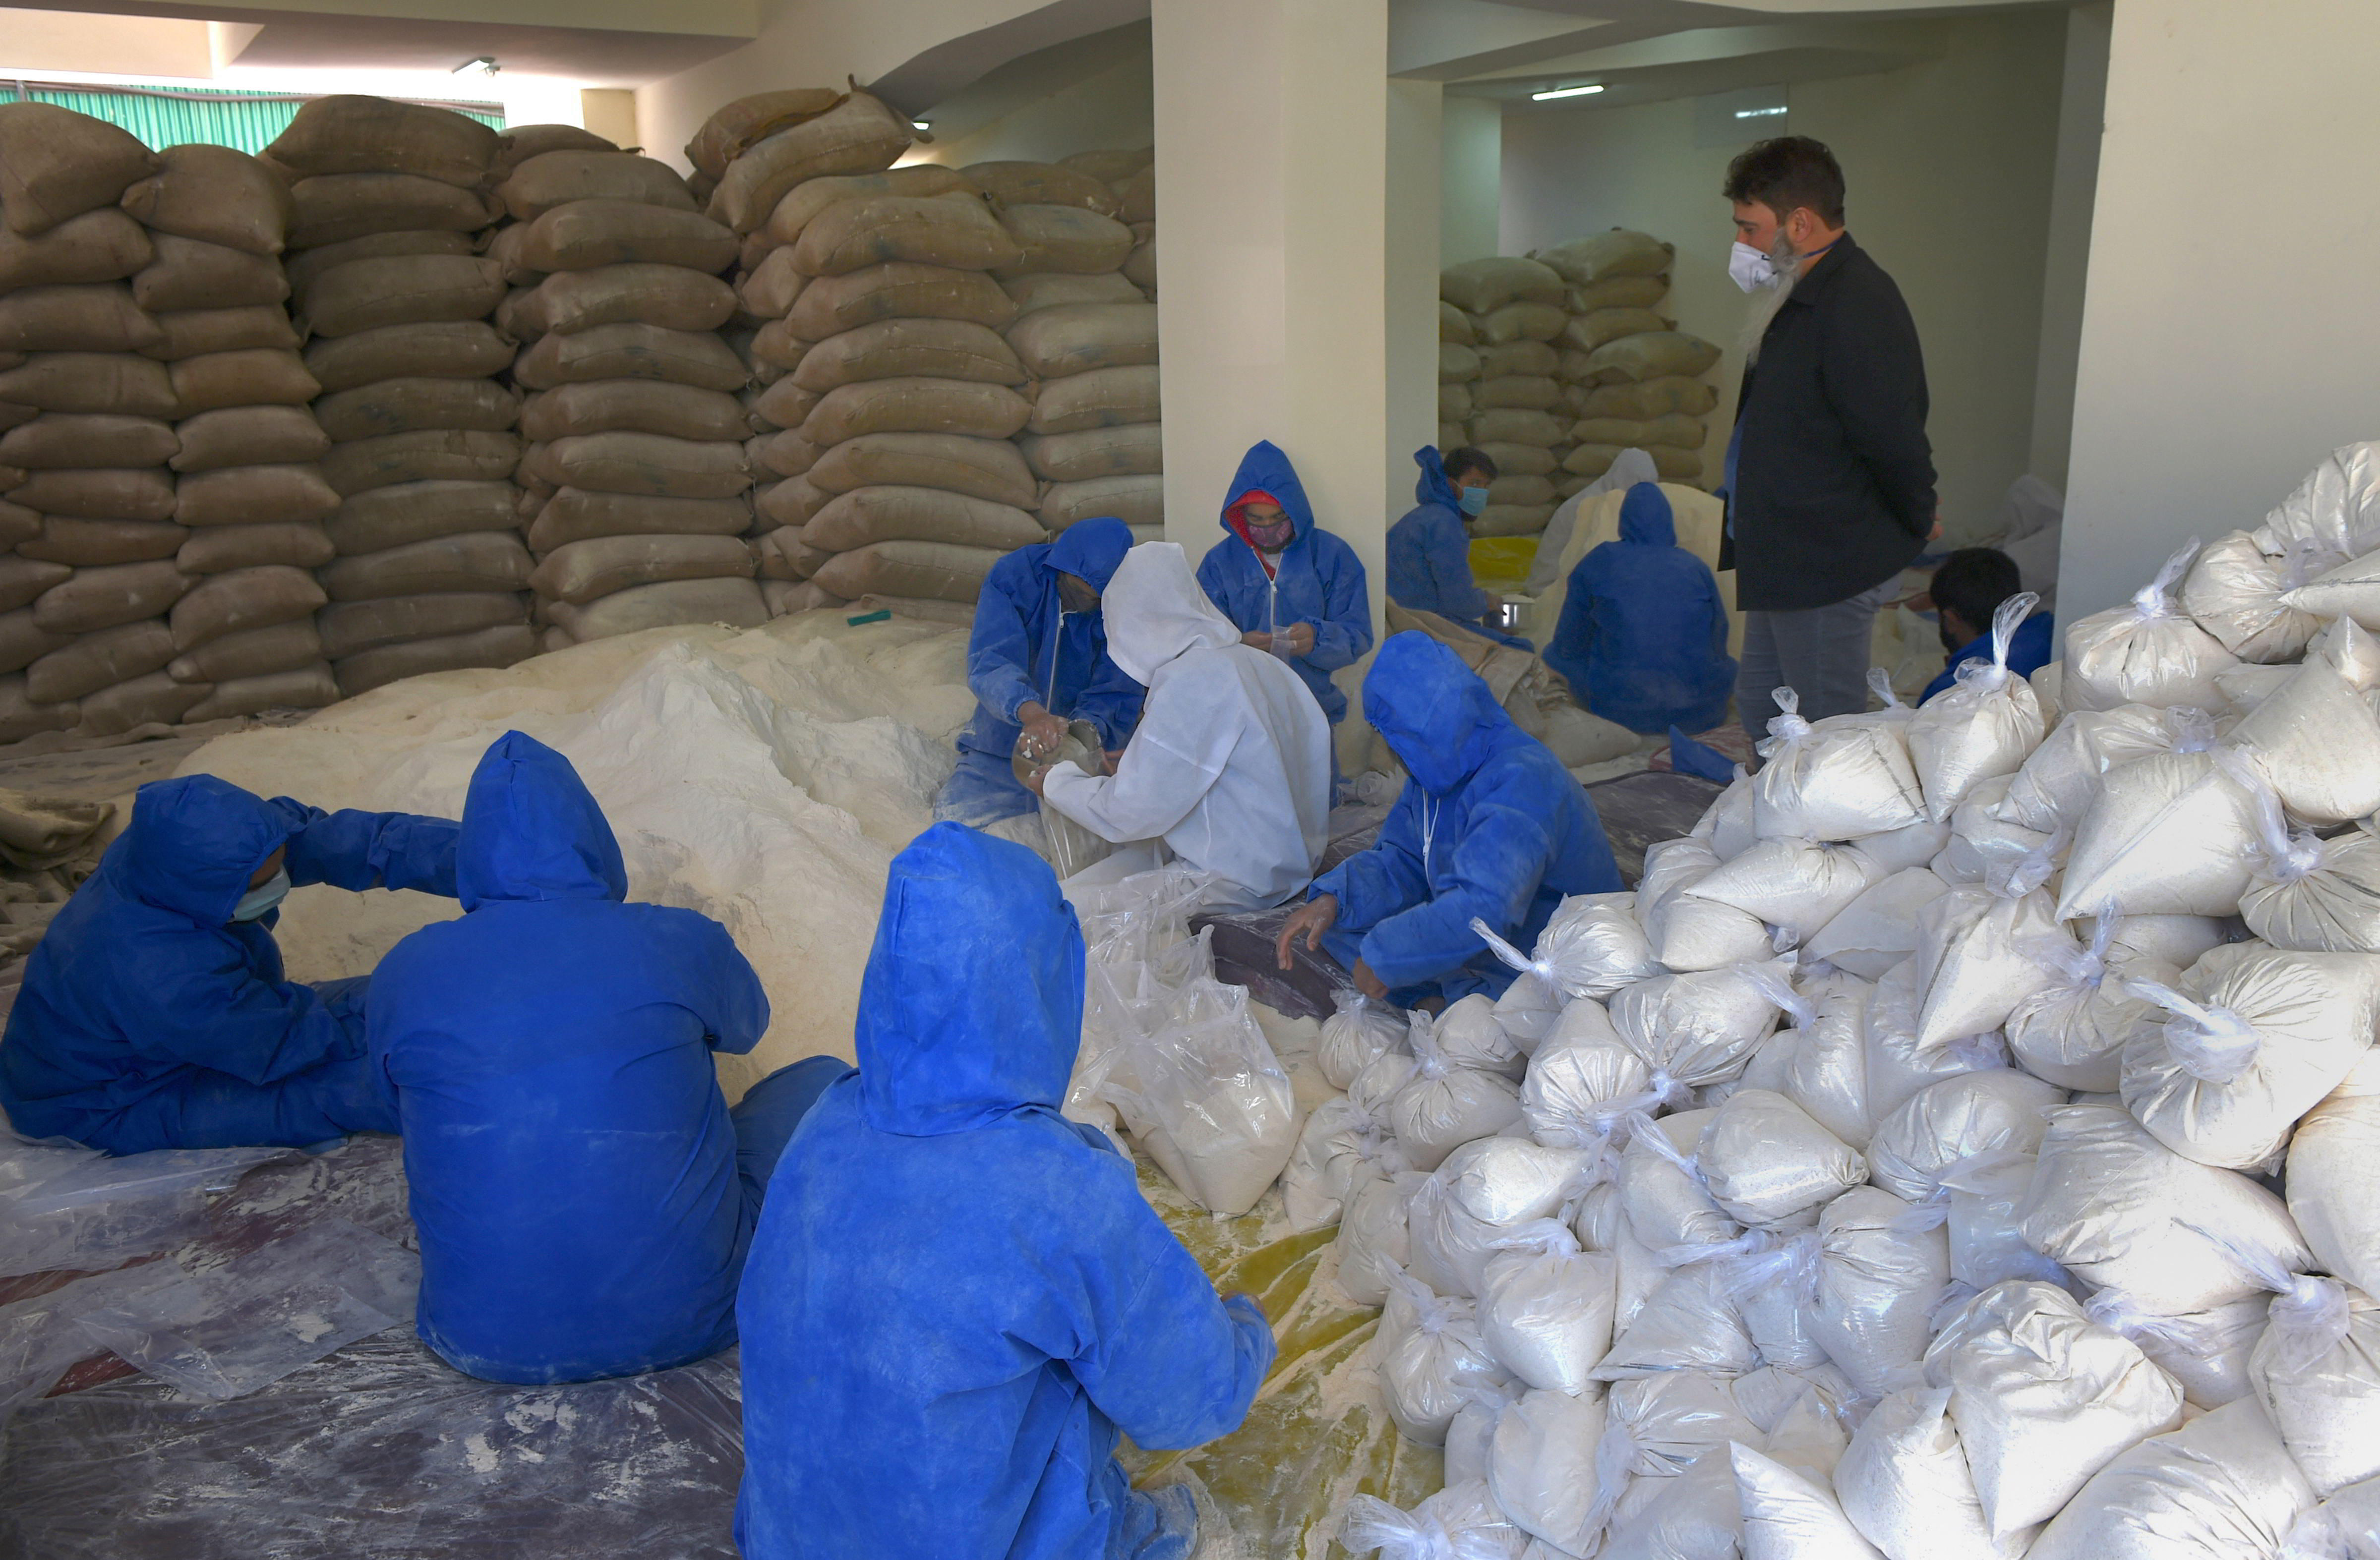 Workers wearing protective suit prepare food packets to distribute among the needy ahead of Ramadan, during the nationwide lockdown to contain the spread of coronavirus, in Srinagar, Tuesday, April 21, 2020